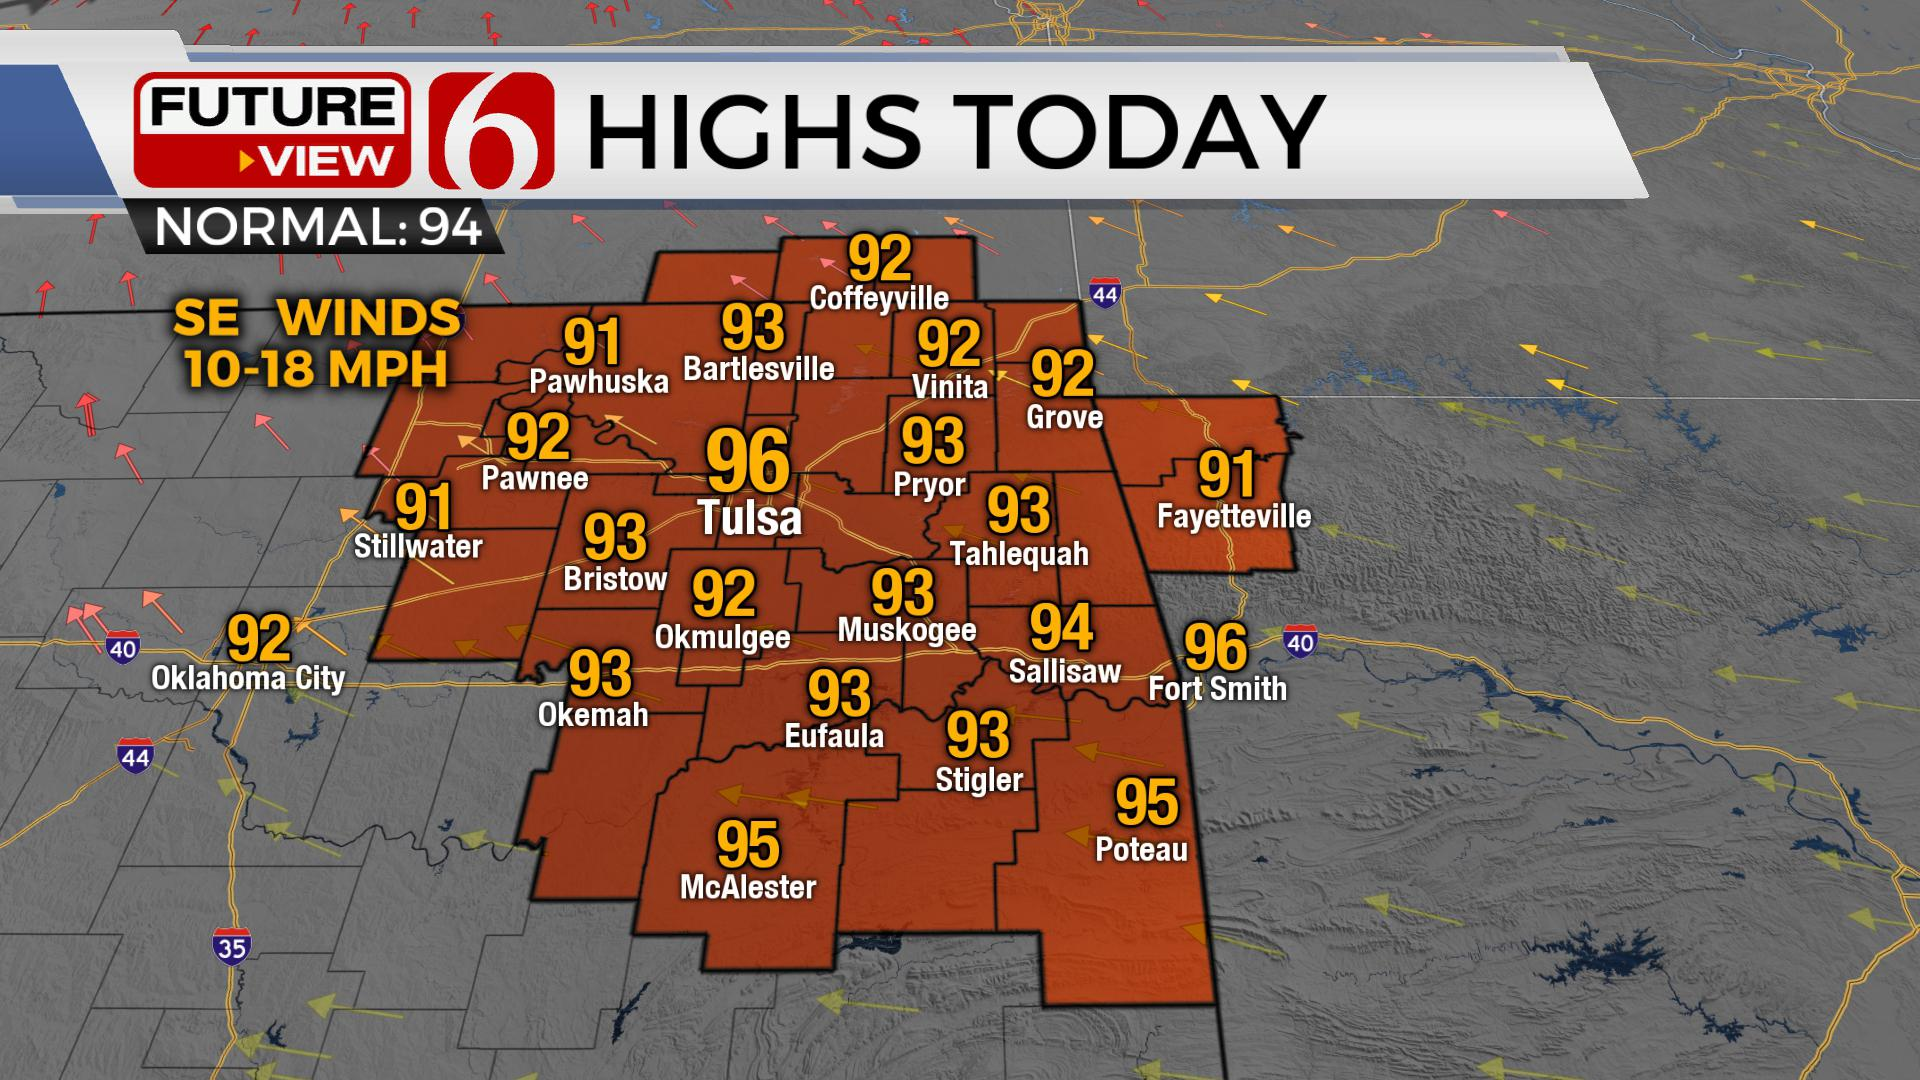 Highs for Friday